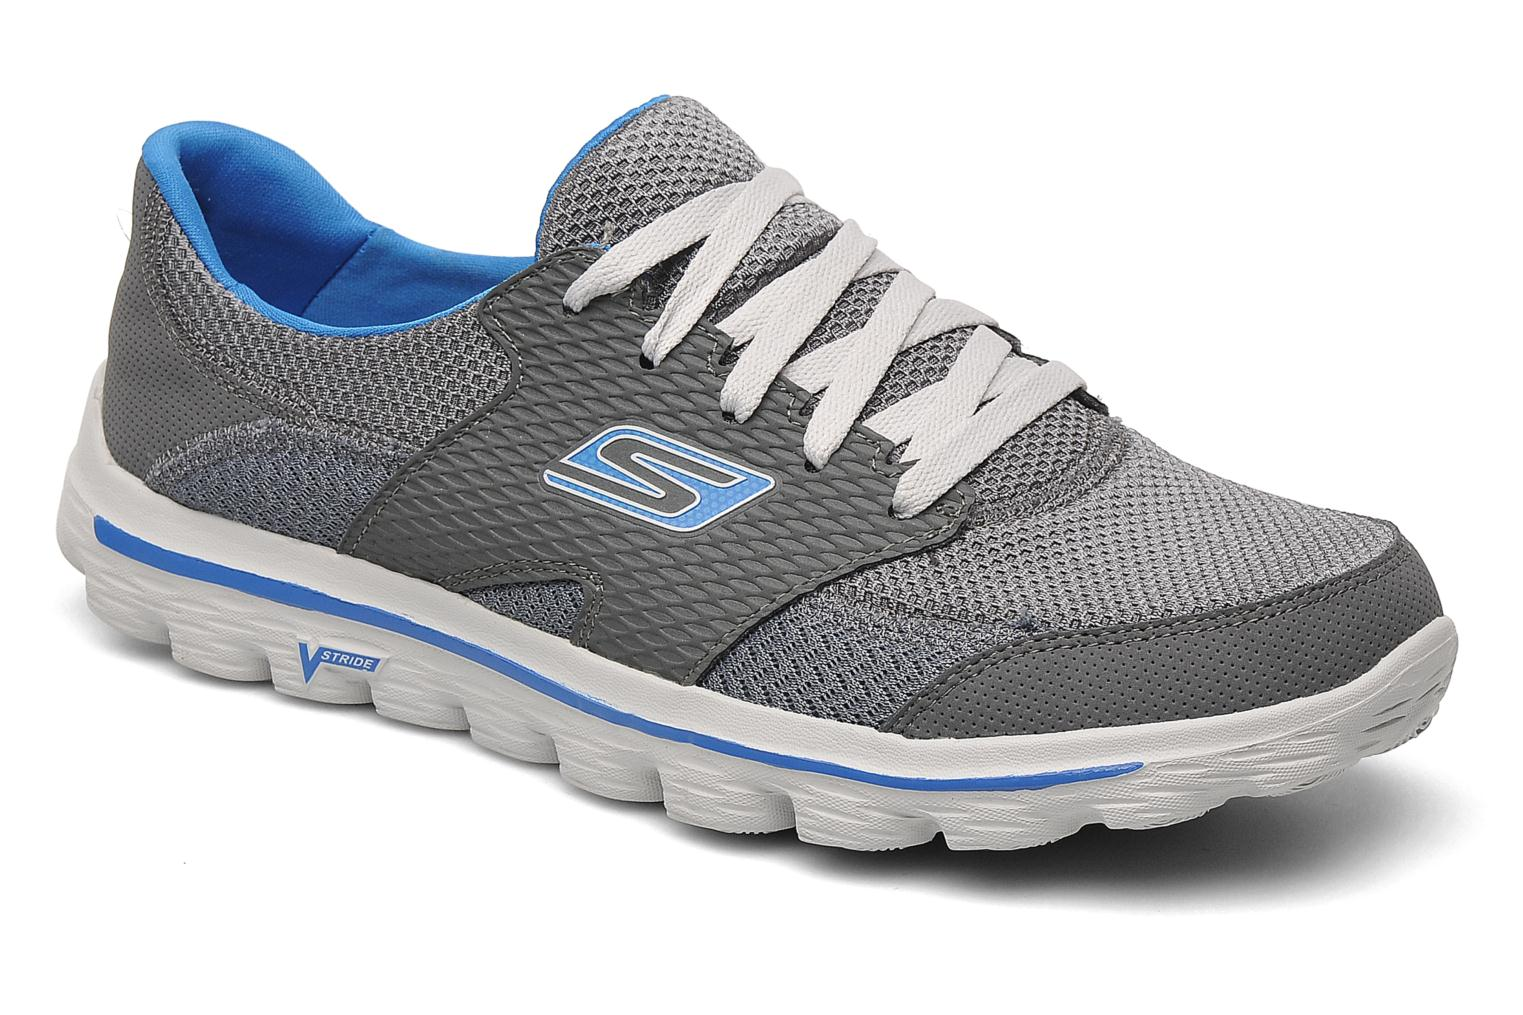 skechers 53592 Sale,up to 34